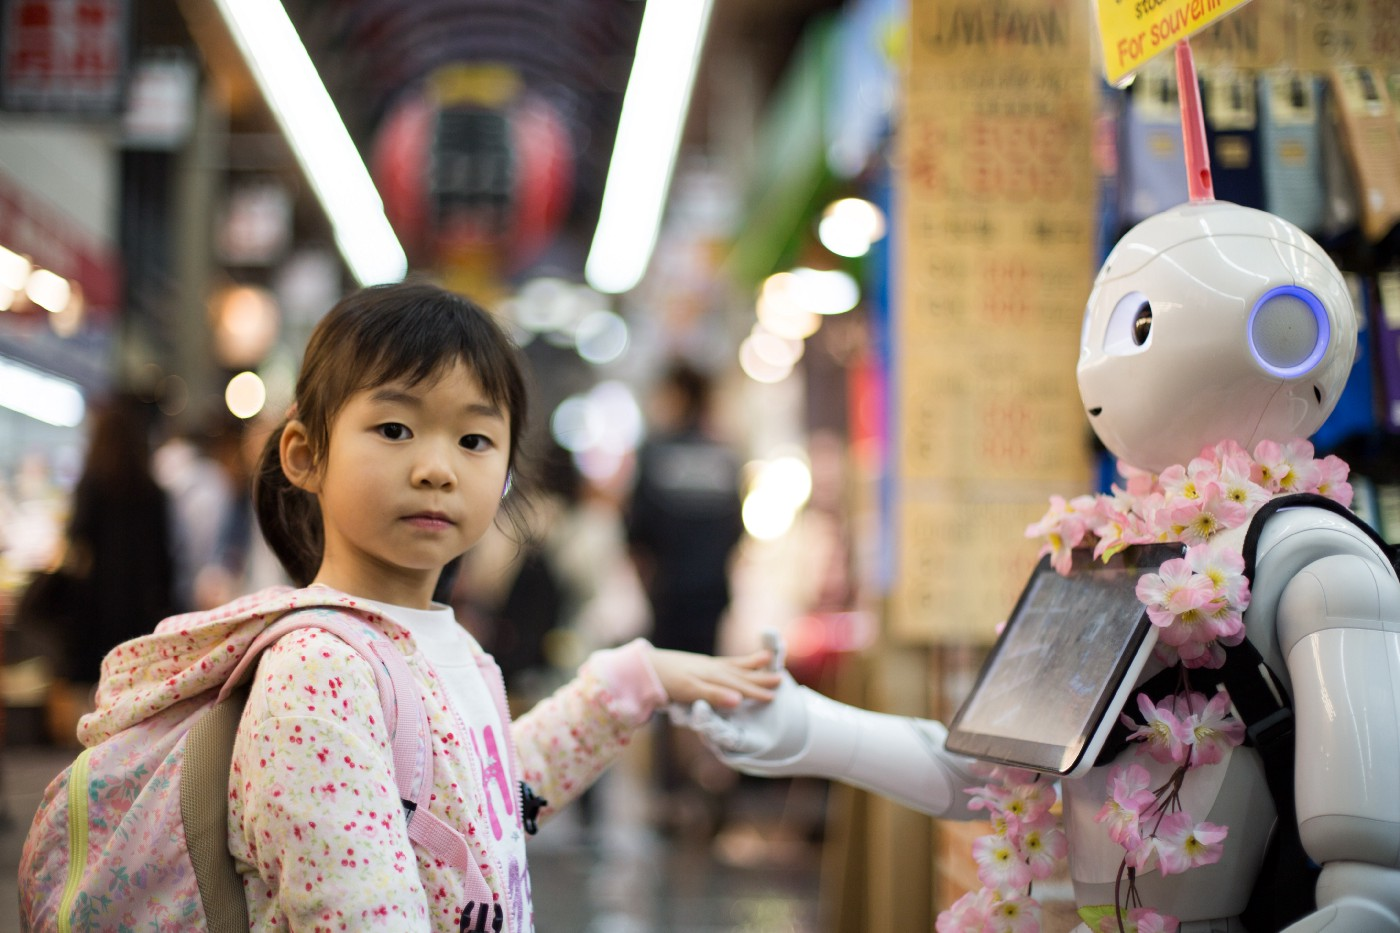 A child with a backpack reaches out to touch the hand of a social robot wearing a wreath of flowers